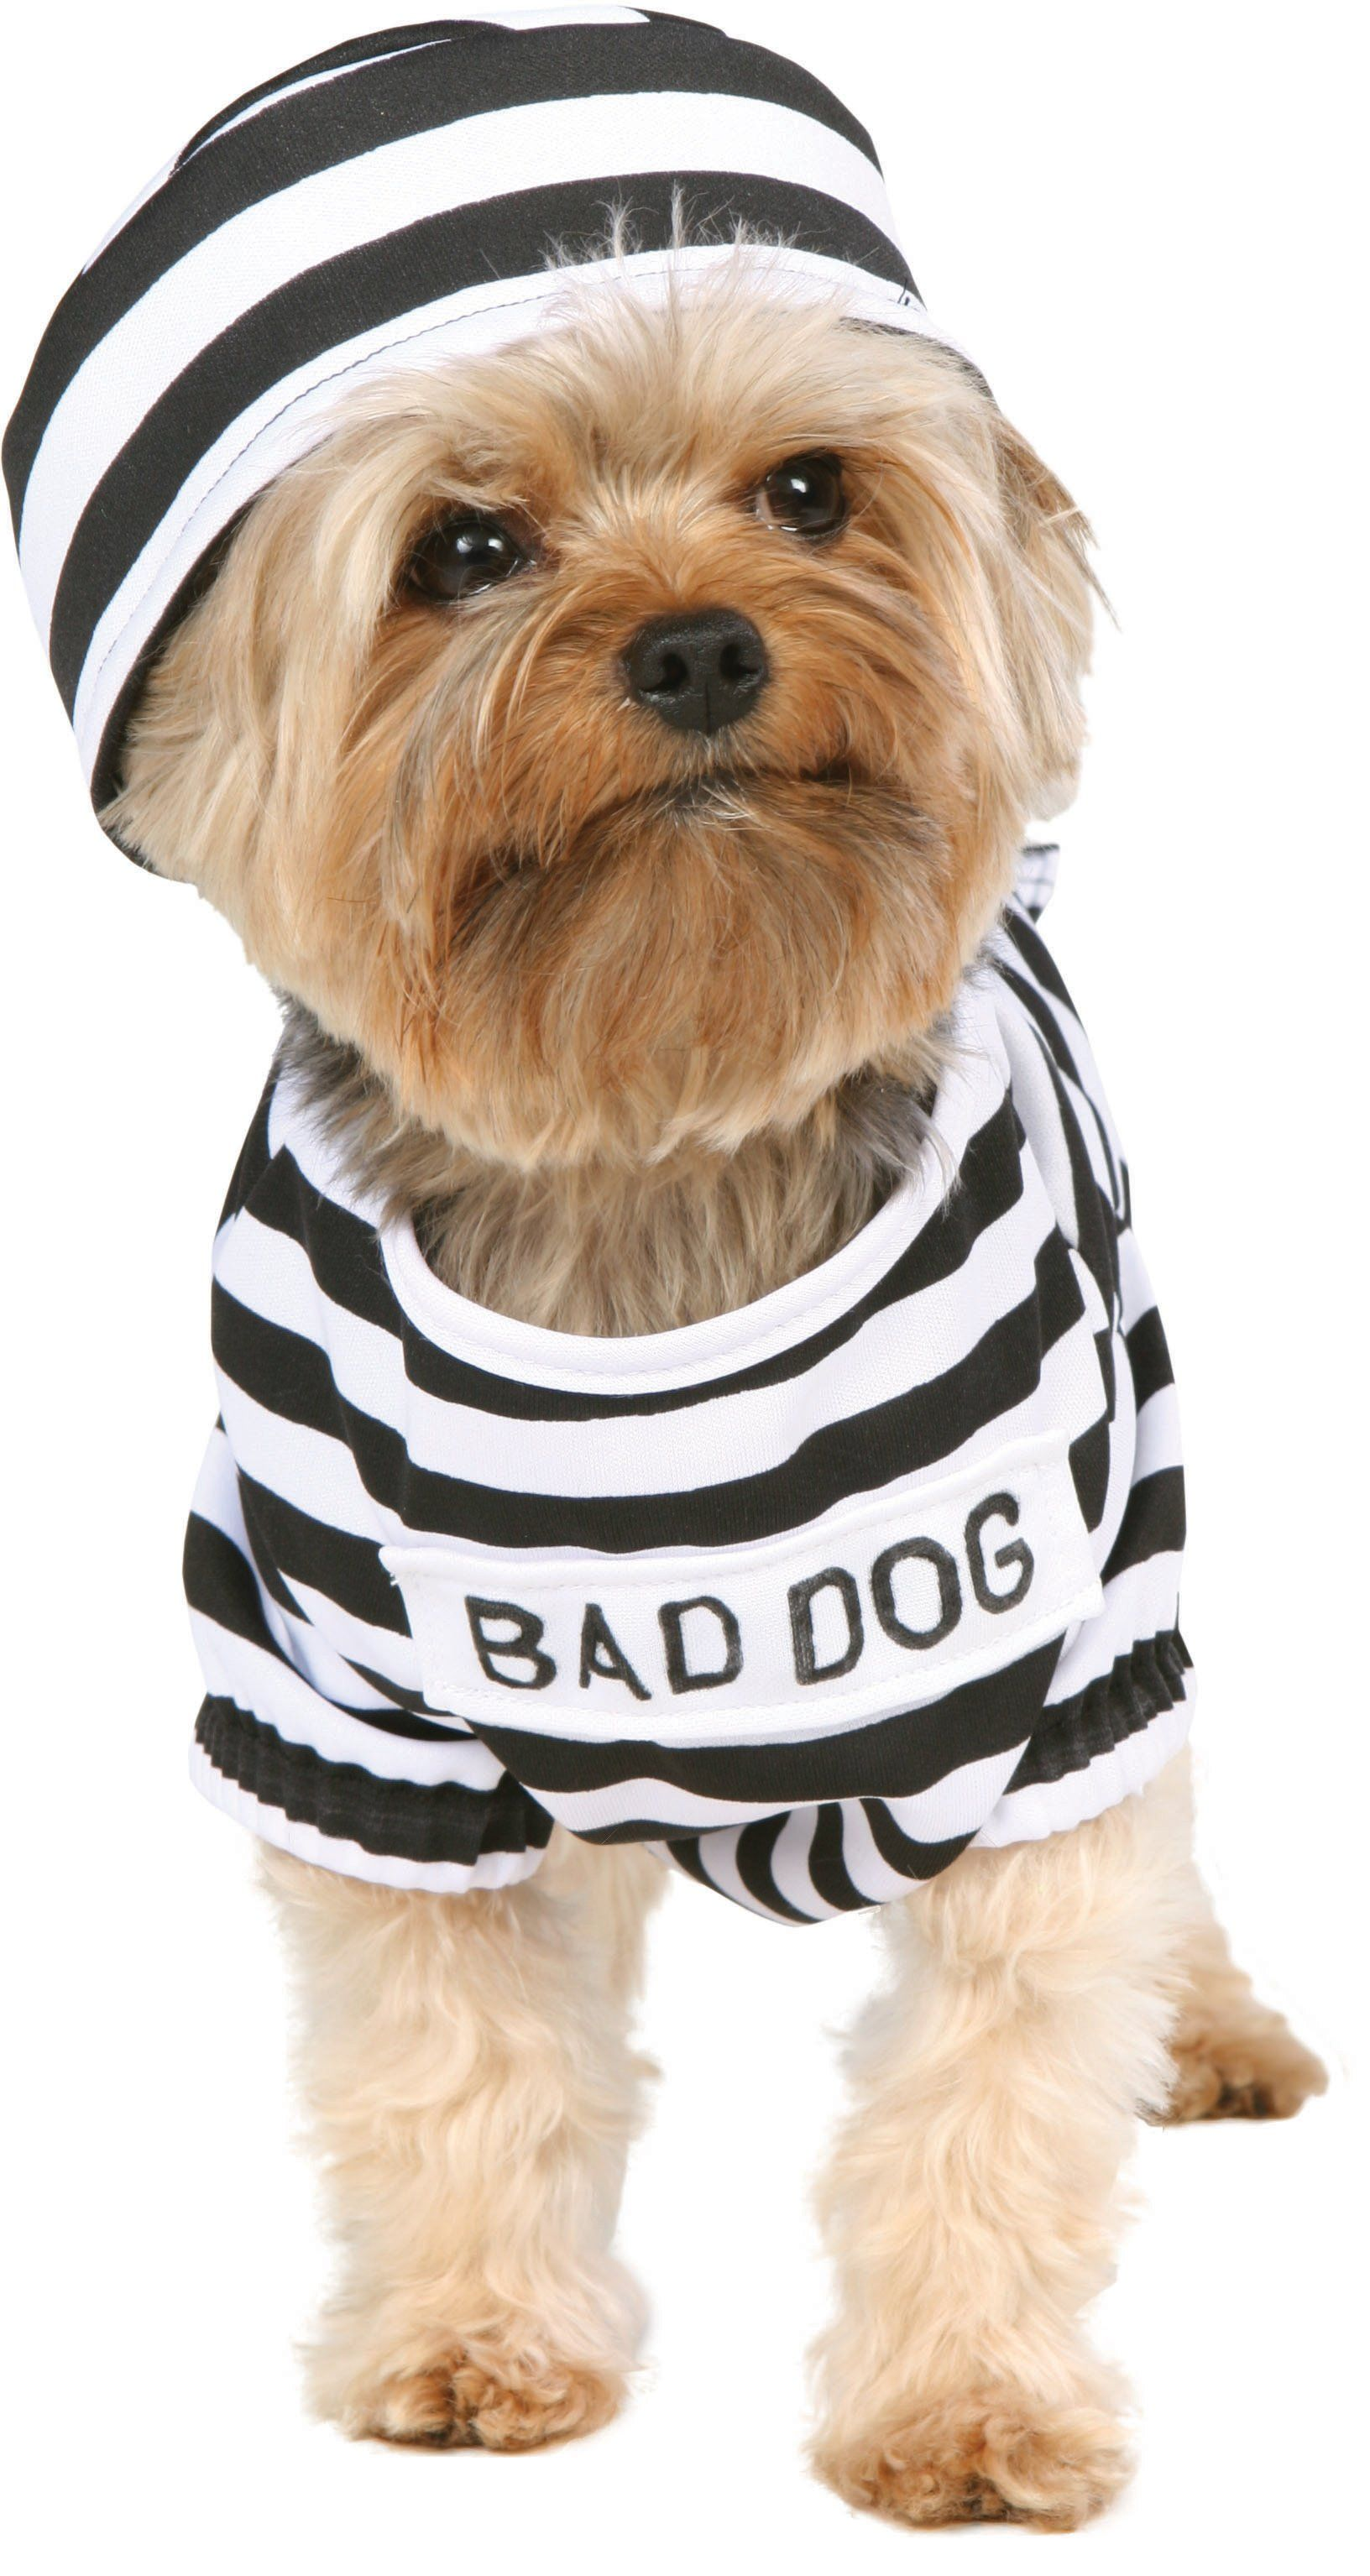 costumes for small dogs Dog Costumes (With images) Dog